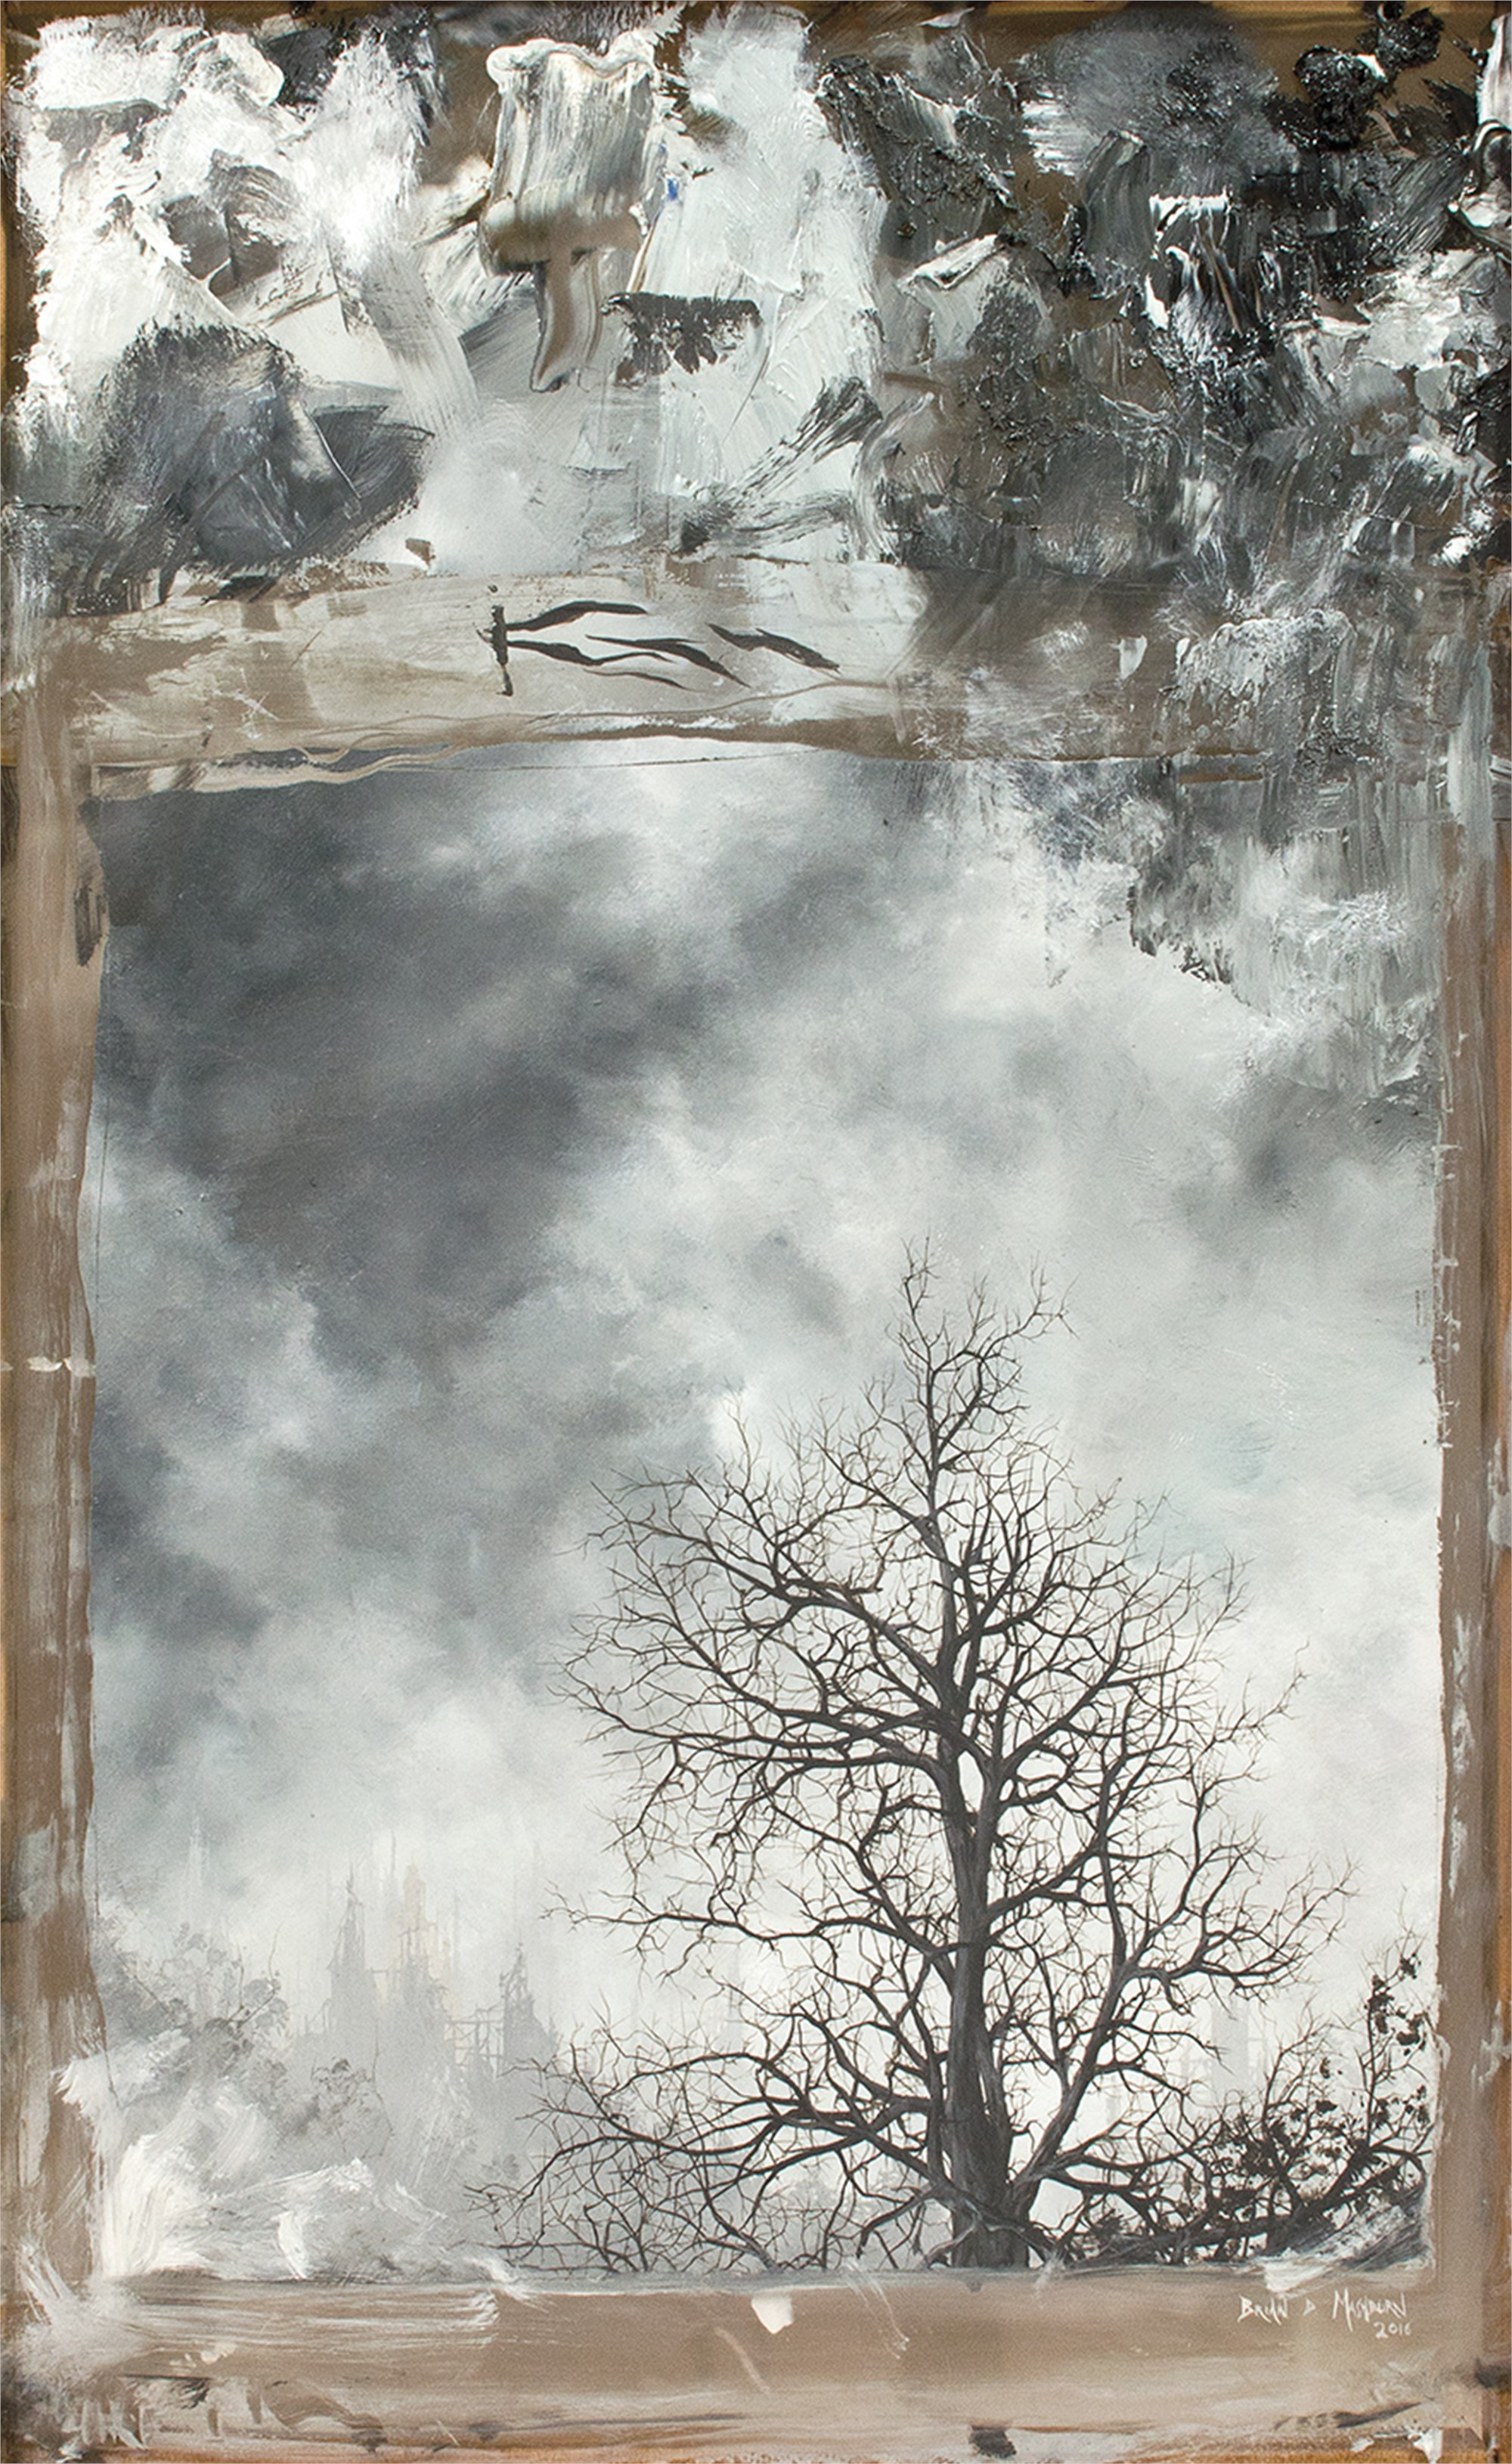 Oak in Winter by Brian Mashburn